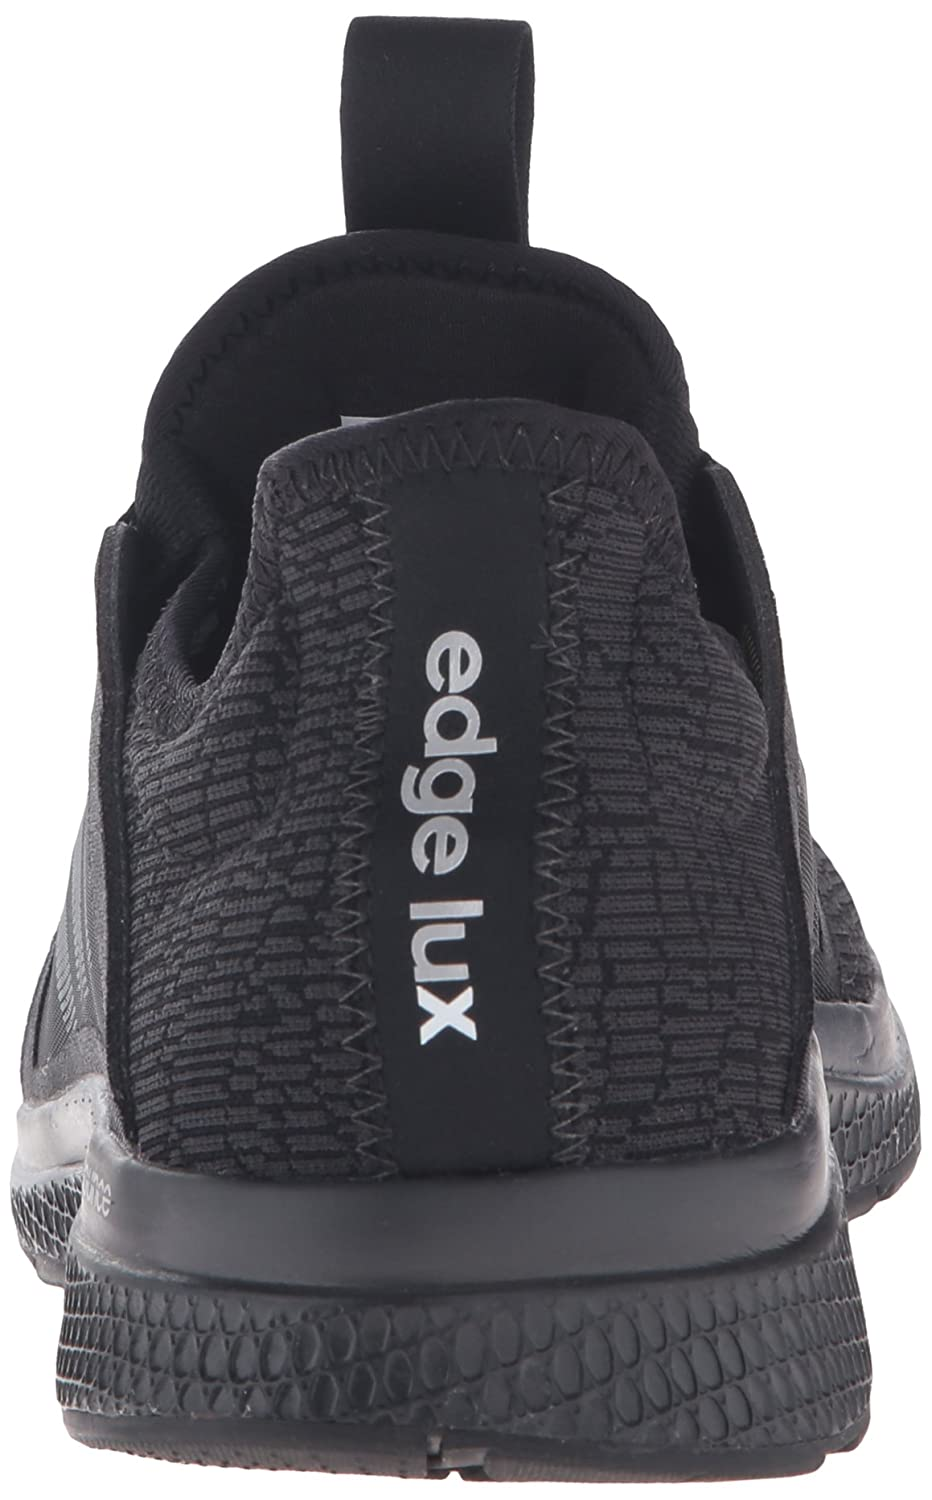 adidas Women's Edge Lux W Running Shoe B01A68BS4C 6.5 B(M) US|Black/White/Dgh Solid Grey